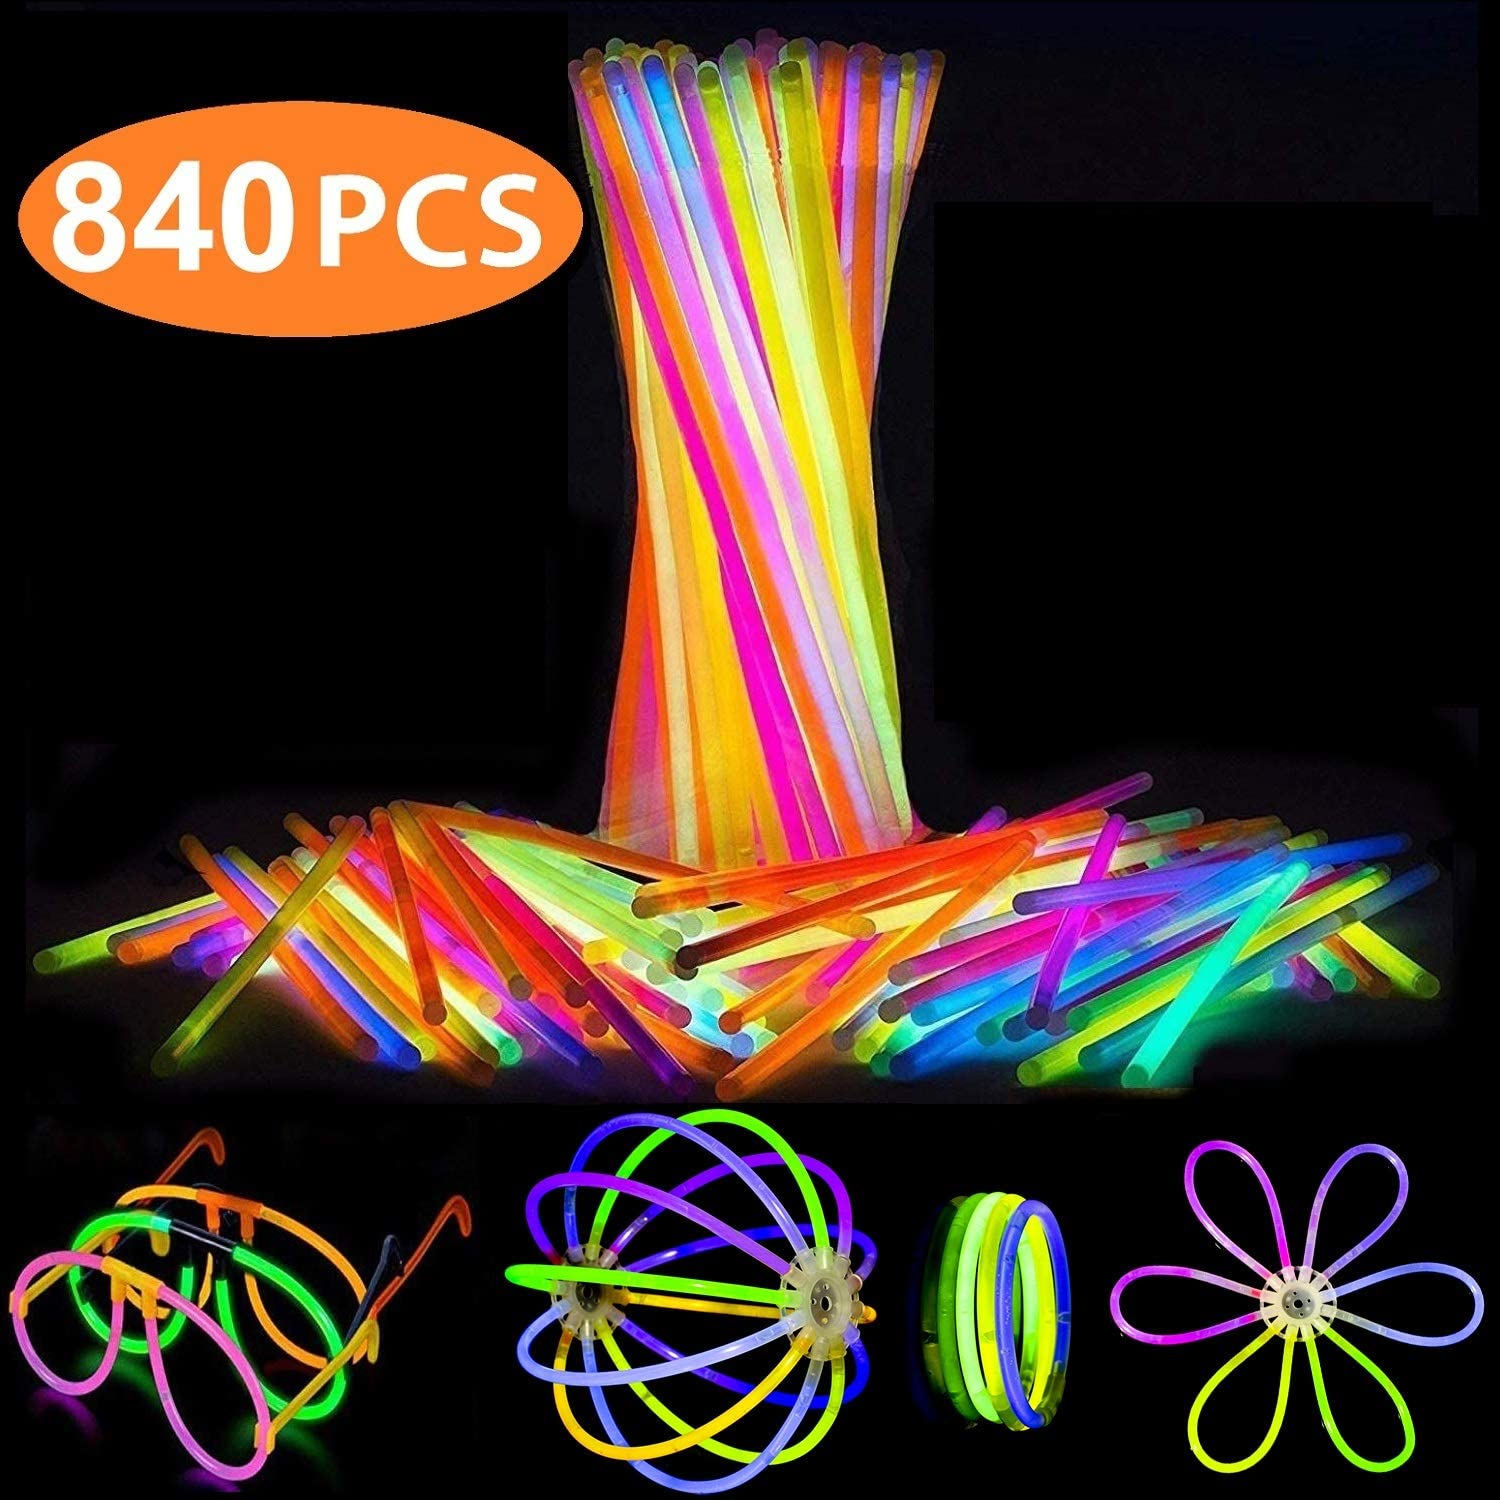 Attikee 840 PCS Glow Sticks Bulk for Glow Party Favors - Toy LED Light Sticks (8 Inch, 7 Colors), 400 PCS Bendable Glow Sticks & 440 PCS Connectors for Eyeglasses, Balls, Flowers, Necklaces, Triple Bracelets, Glow in Dark Non-Toxic Light Sticks for Kids Adults